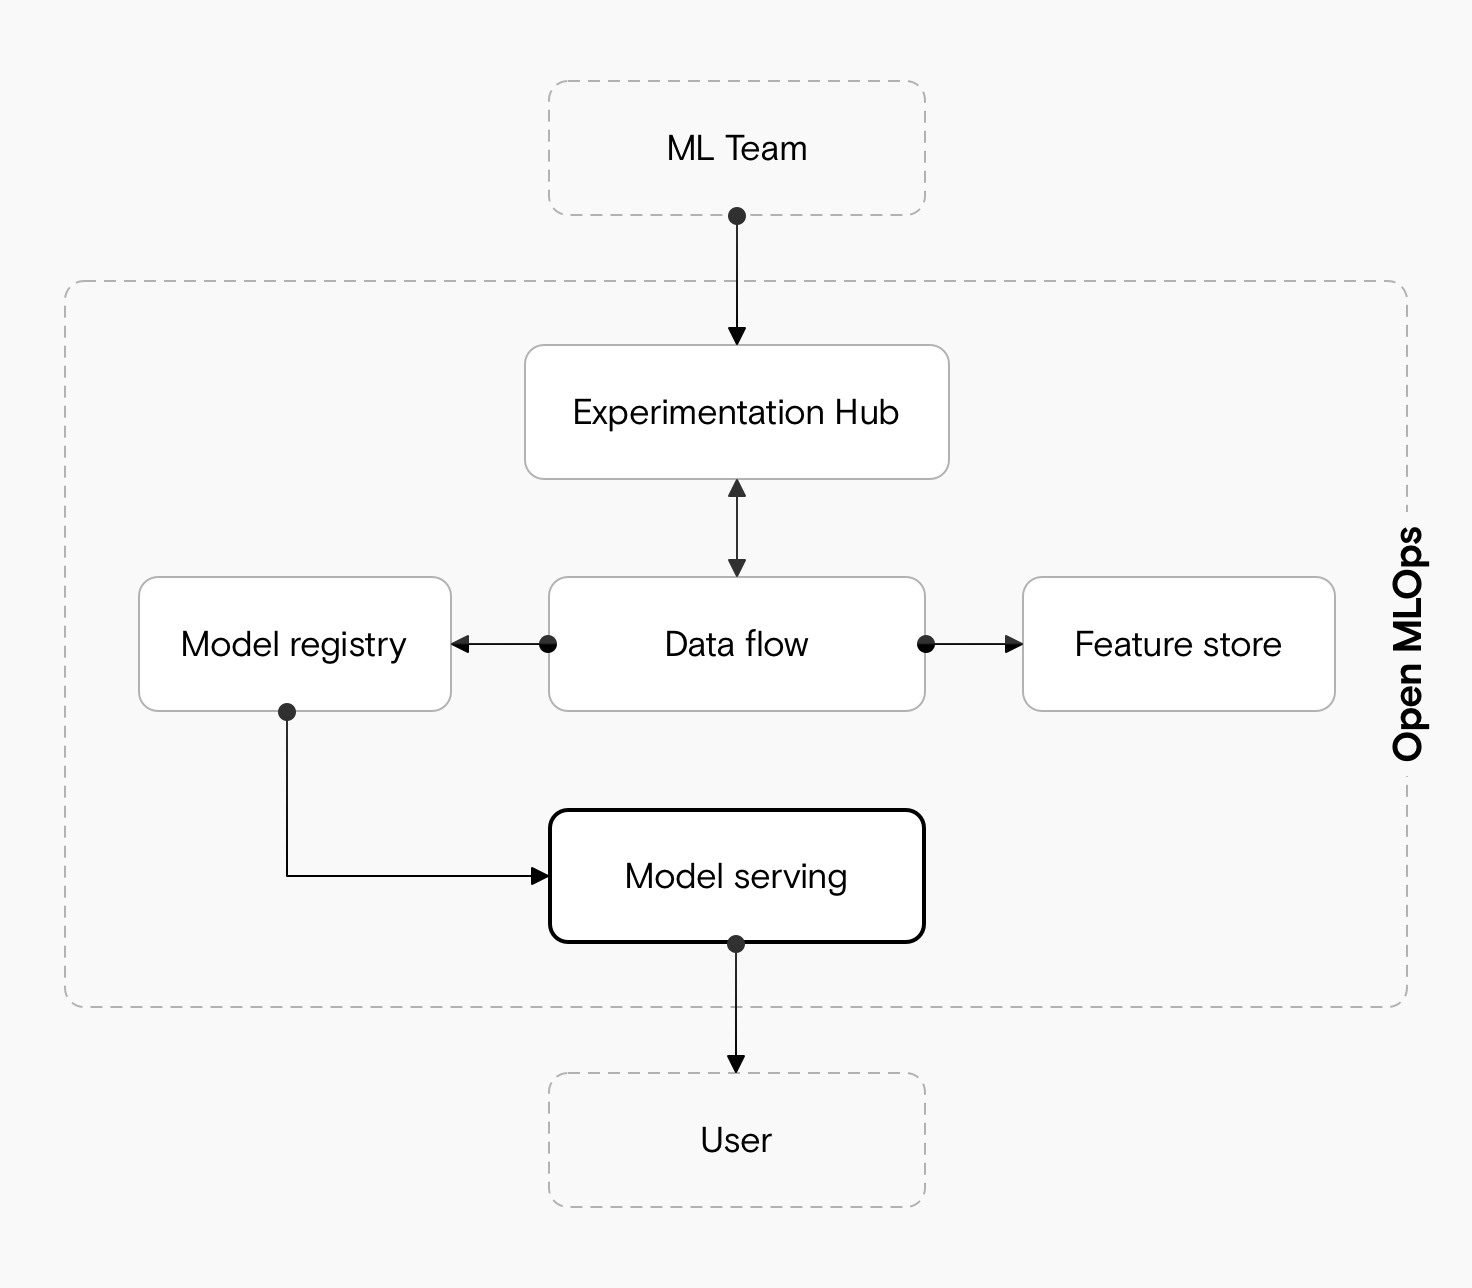 A diagram showing how an ML team uses an experimentation hub that integrates with a data flow tool, which integrates with a feature store and a model registry, which integrates with a model serving tool, which is used by the user.